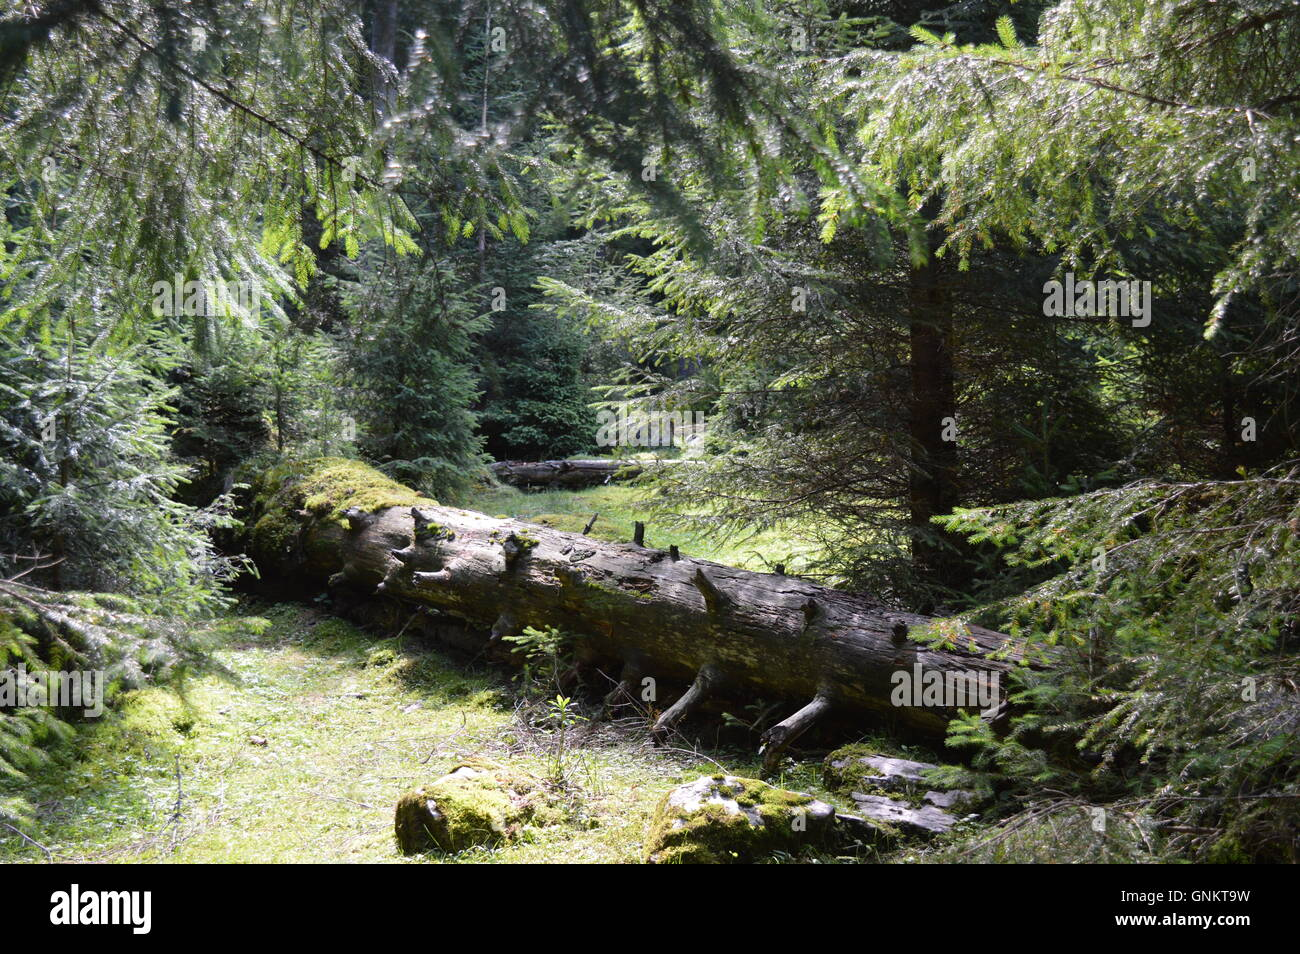 Fallen tree in a pine forest Stock Photo